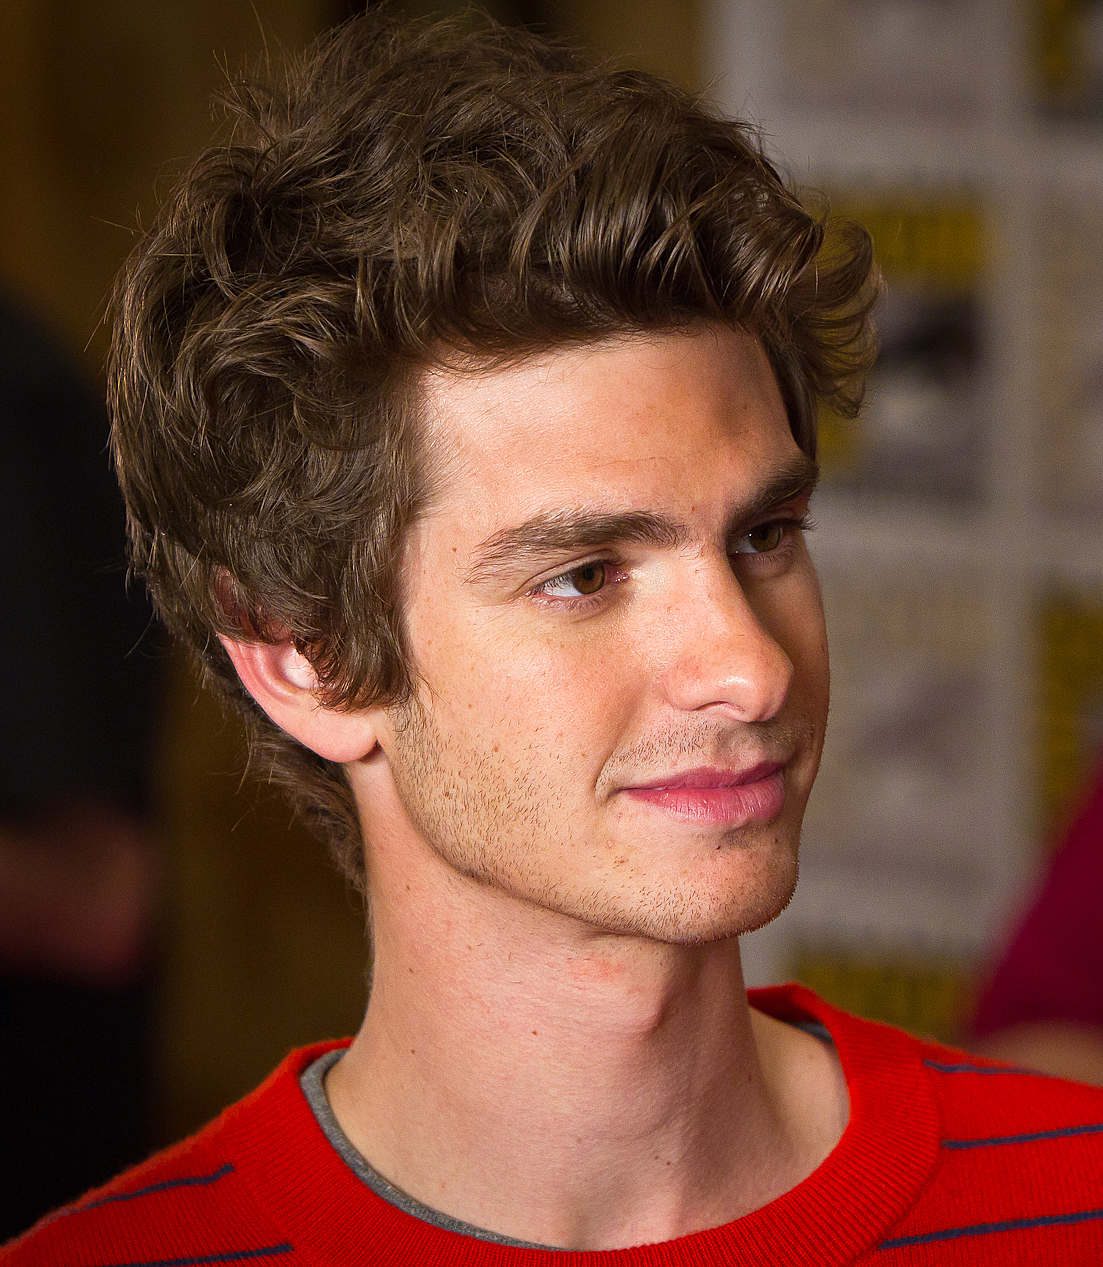 File:Andrew Garfield Comic-Con 3, 2011.jpg - Wikimedia Commons Andrew